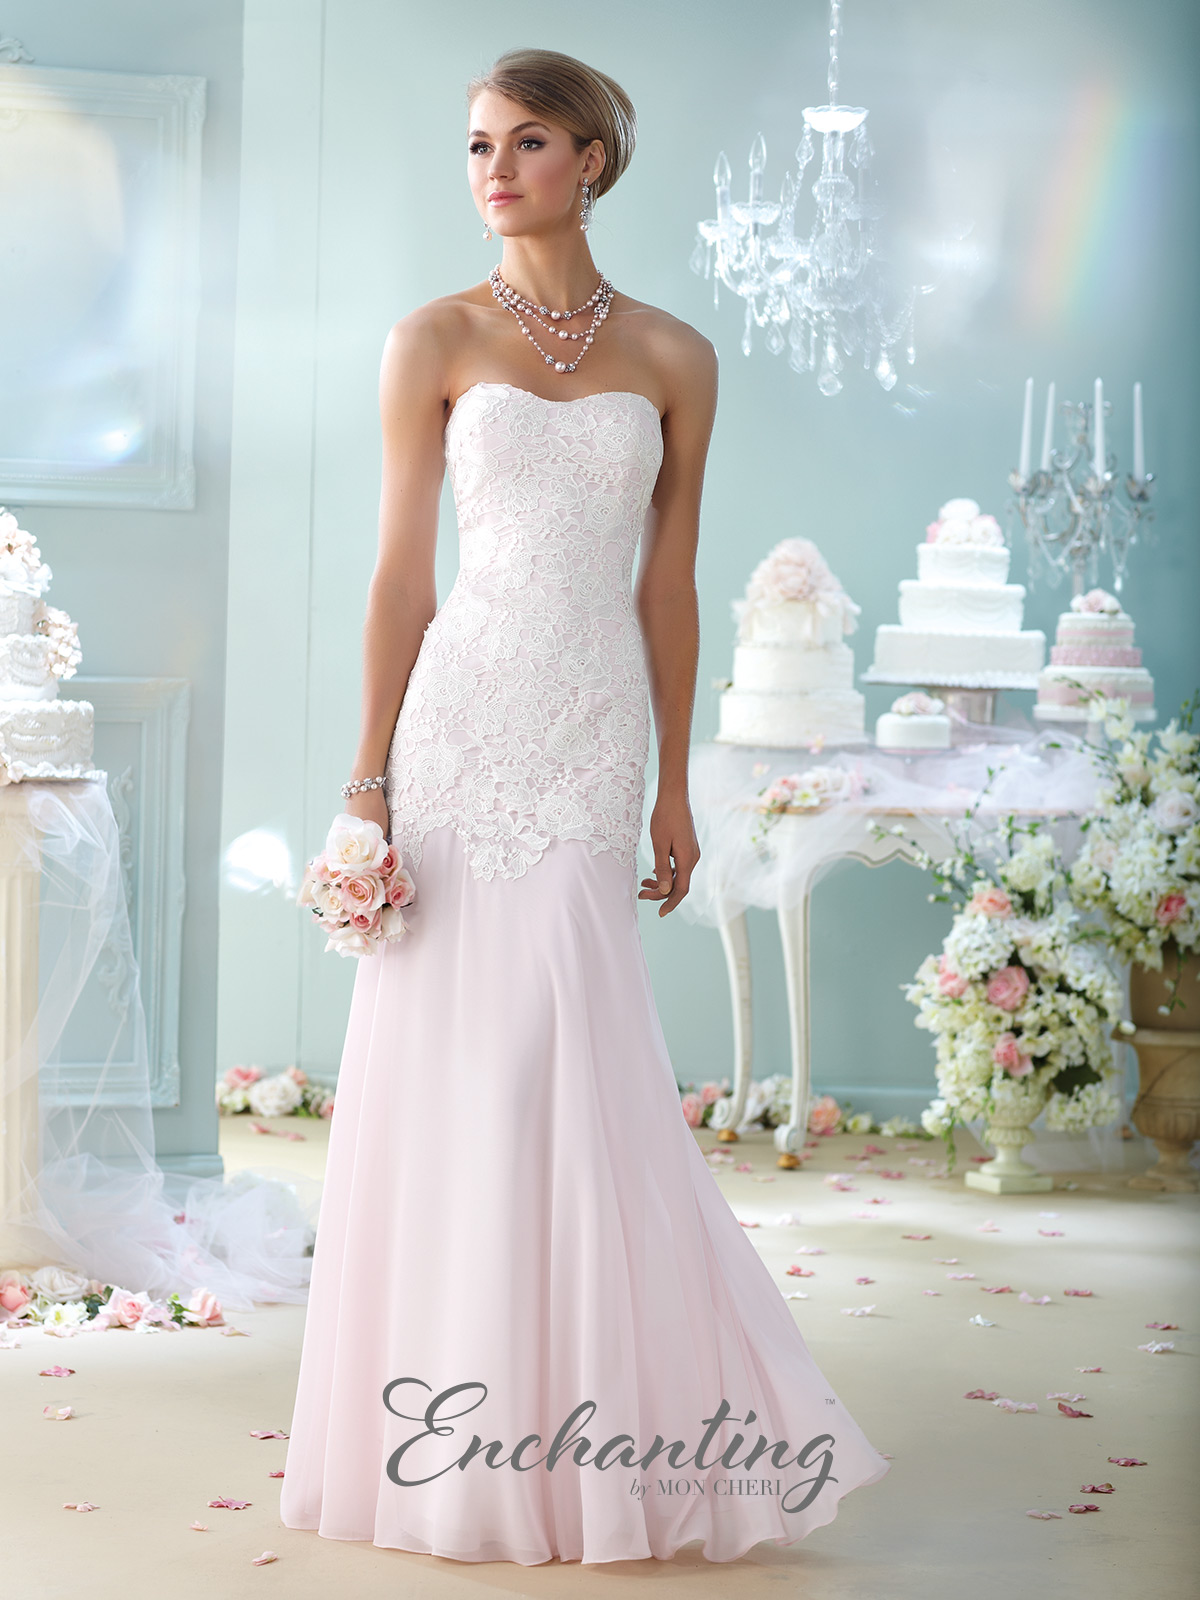 Strapless Lace and Chiffon Fit and Flare Gown with Matching Shawl